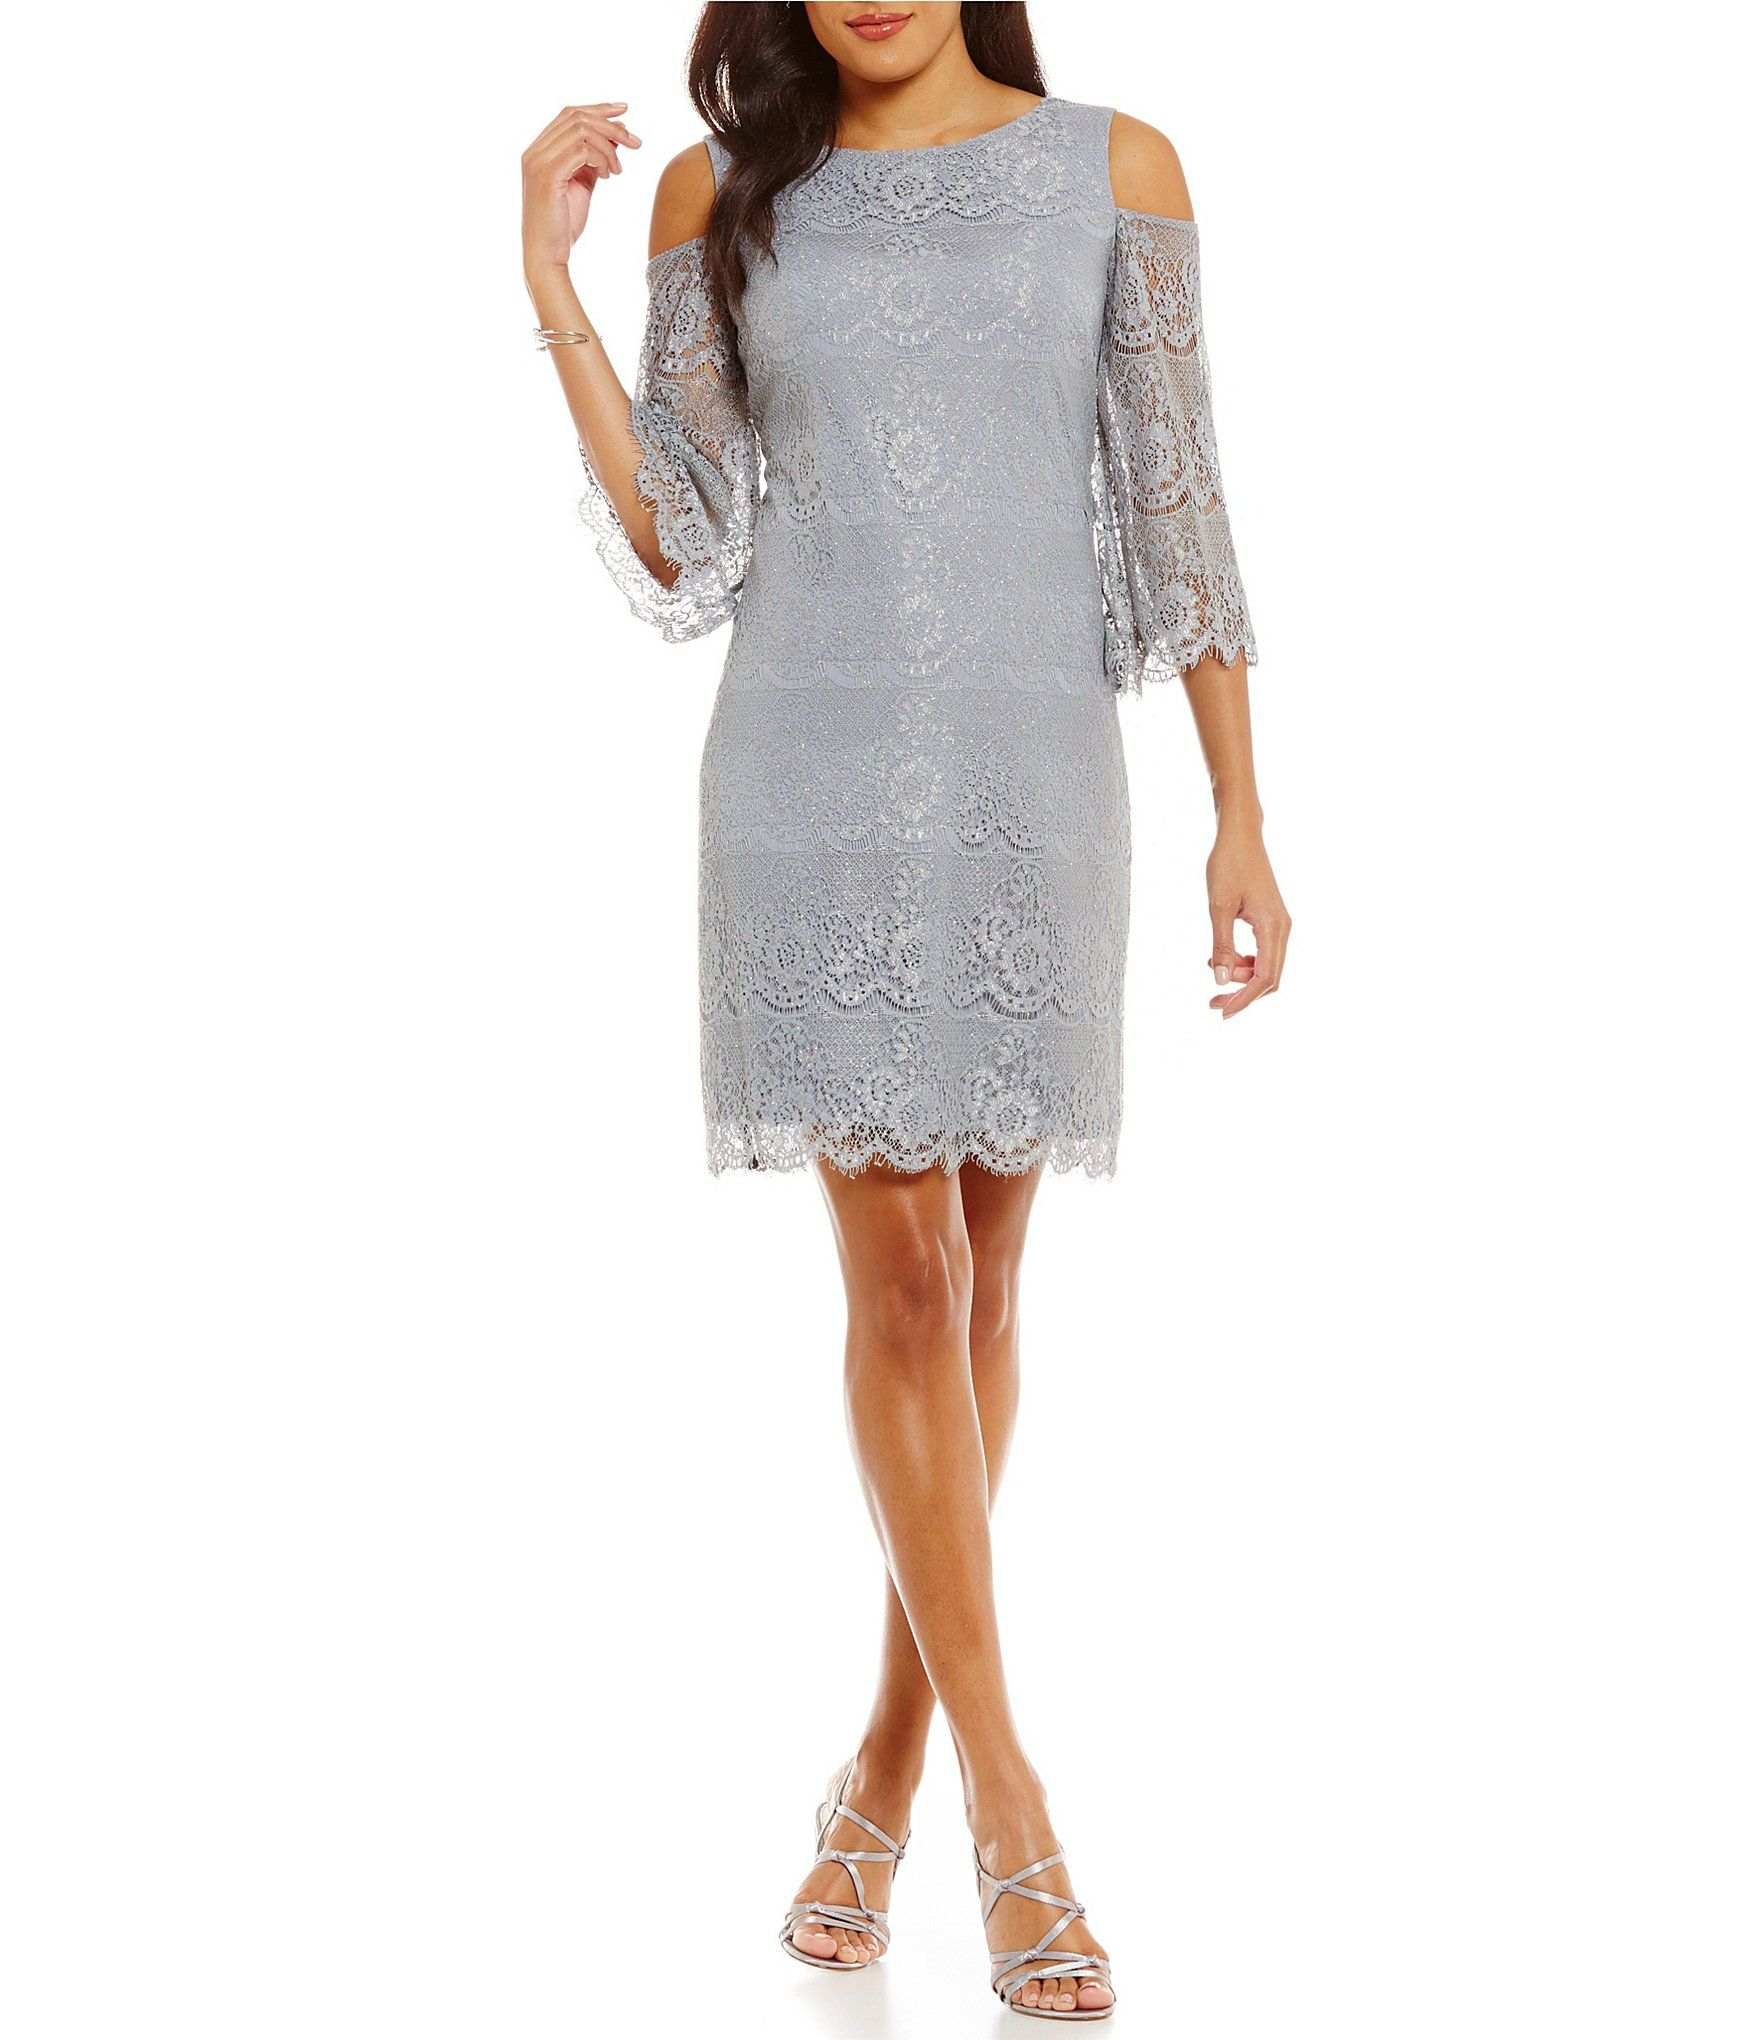 4ac78dd19c82 Shop for Jessica Howard Cold-Shoulder Lace Shift Dress at Dillards.com.  Visit Dillards.com to find clothing, accessories, shoes, cosmetics & more.